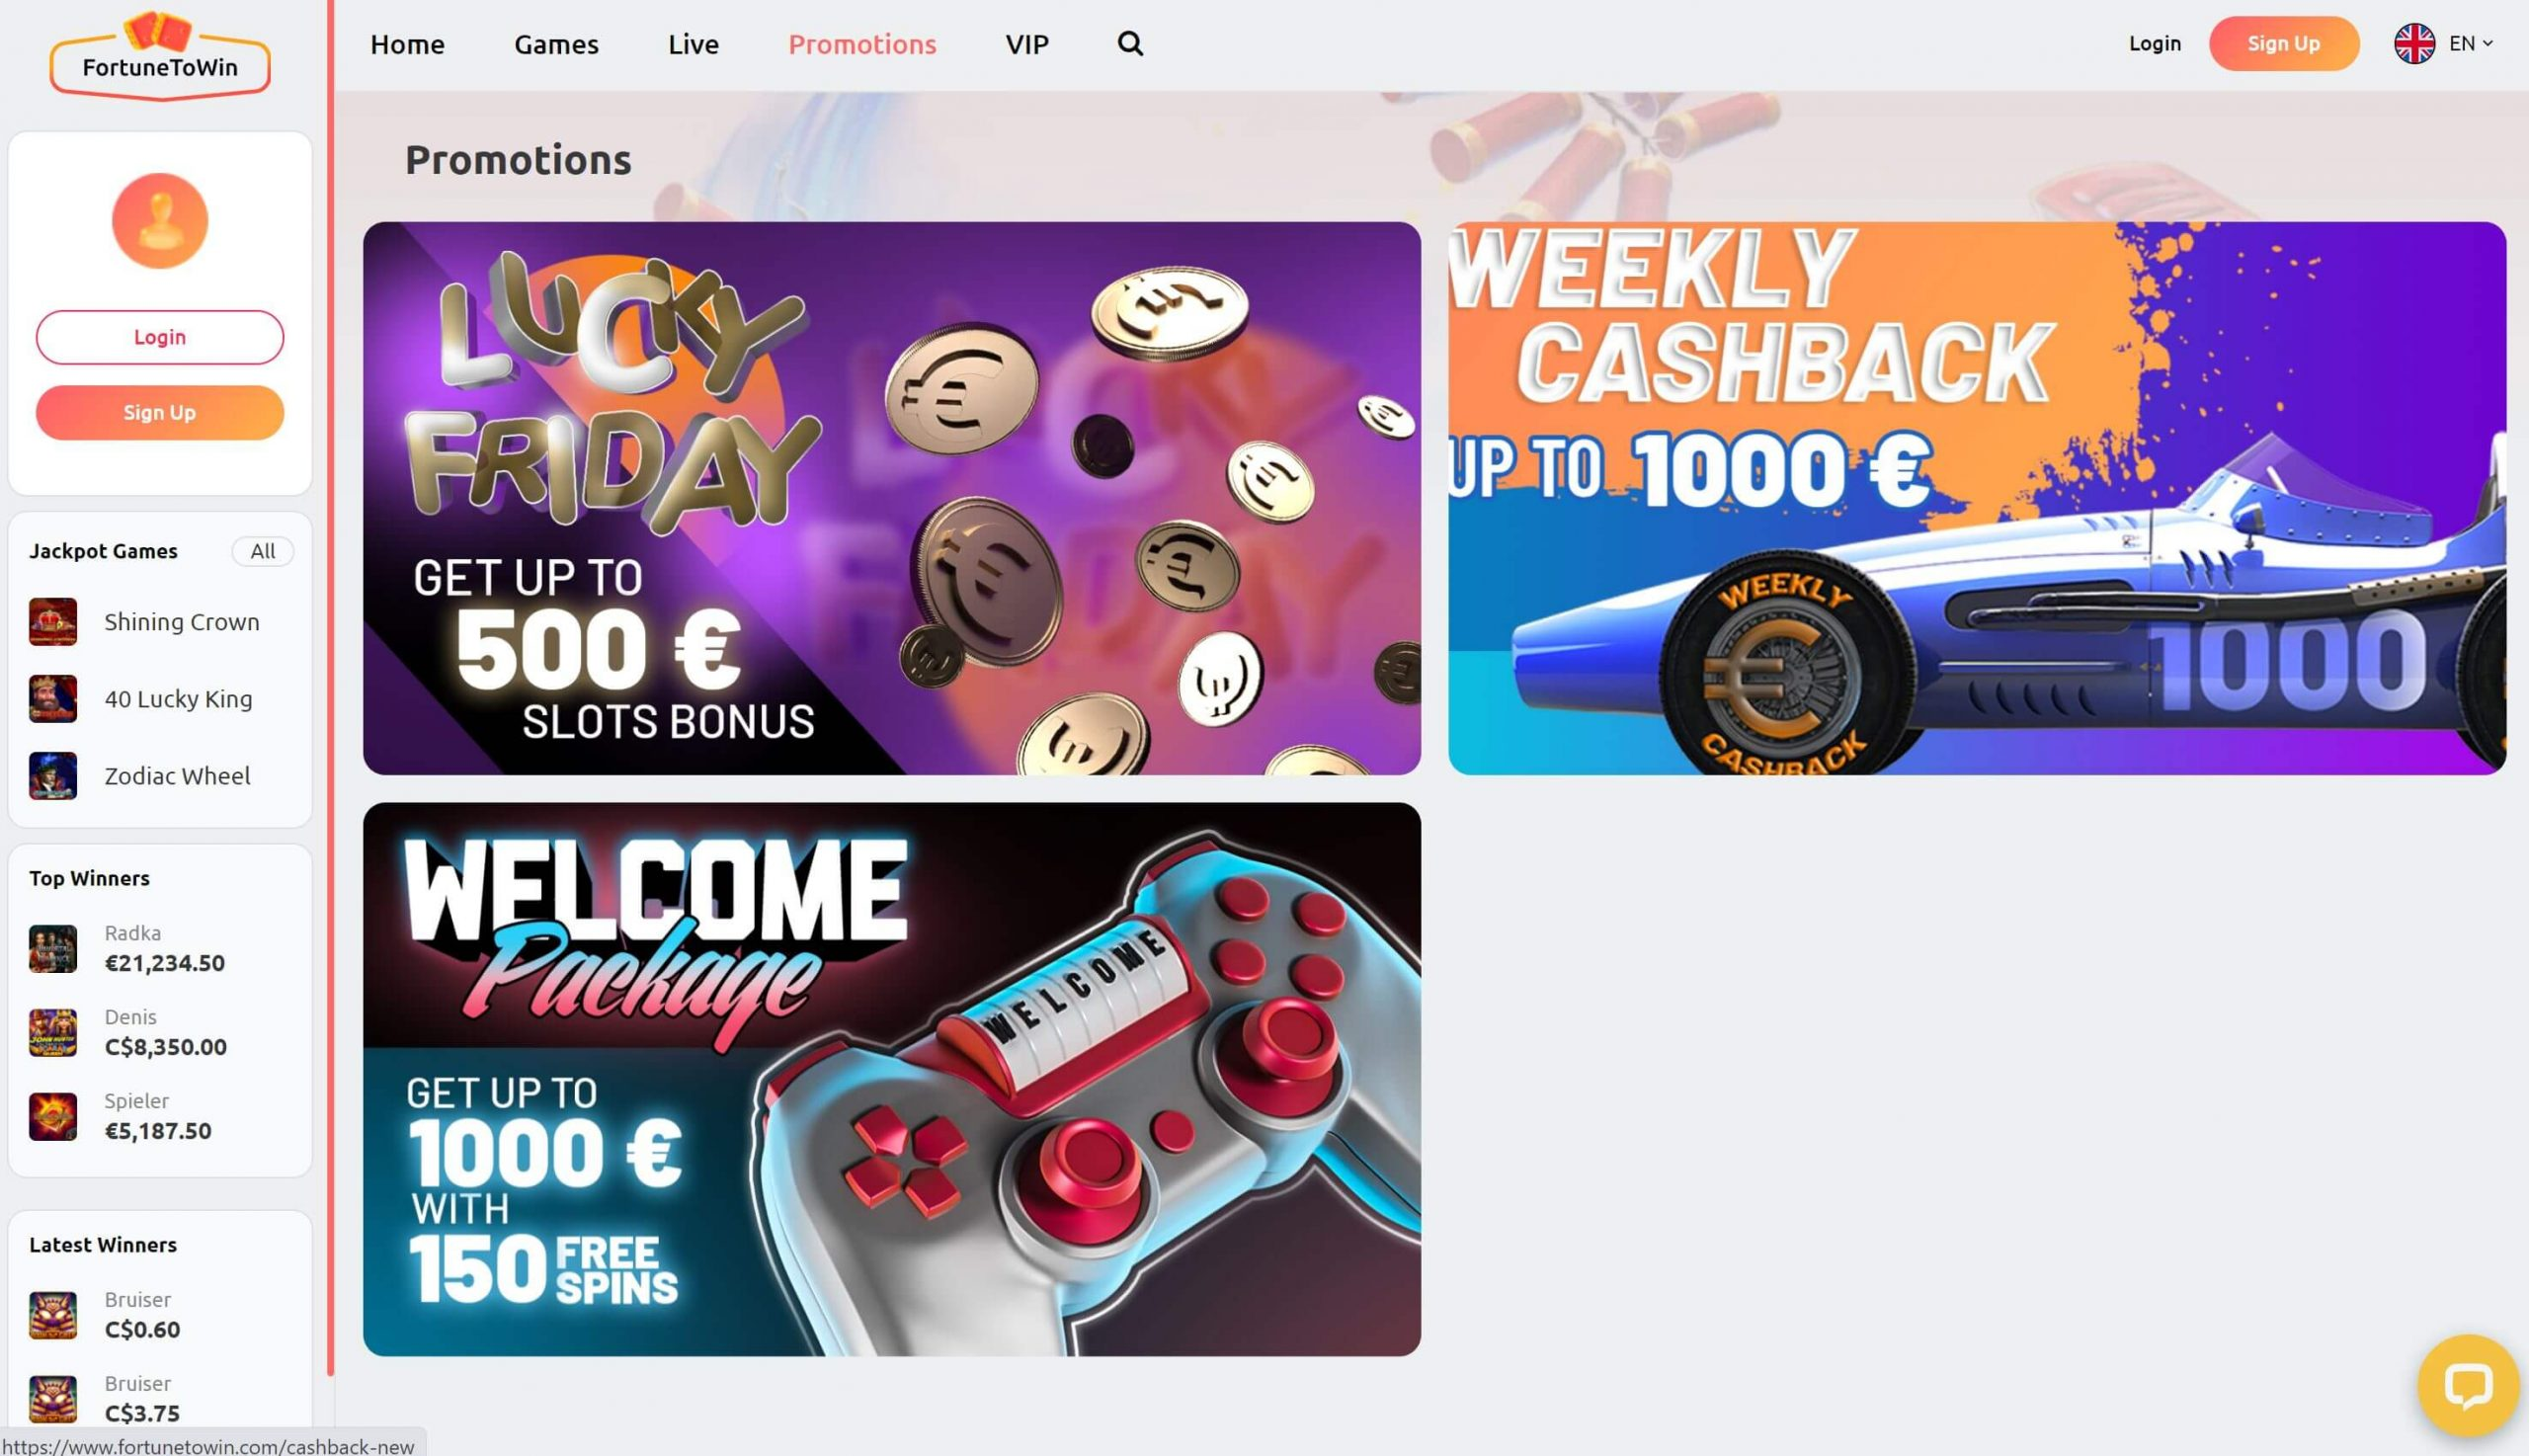 FortuneToWin Promotions